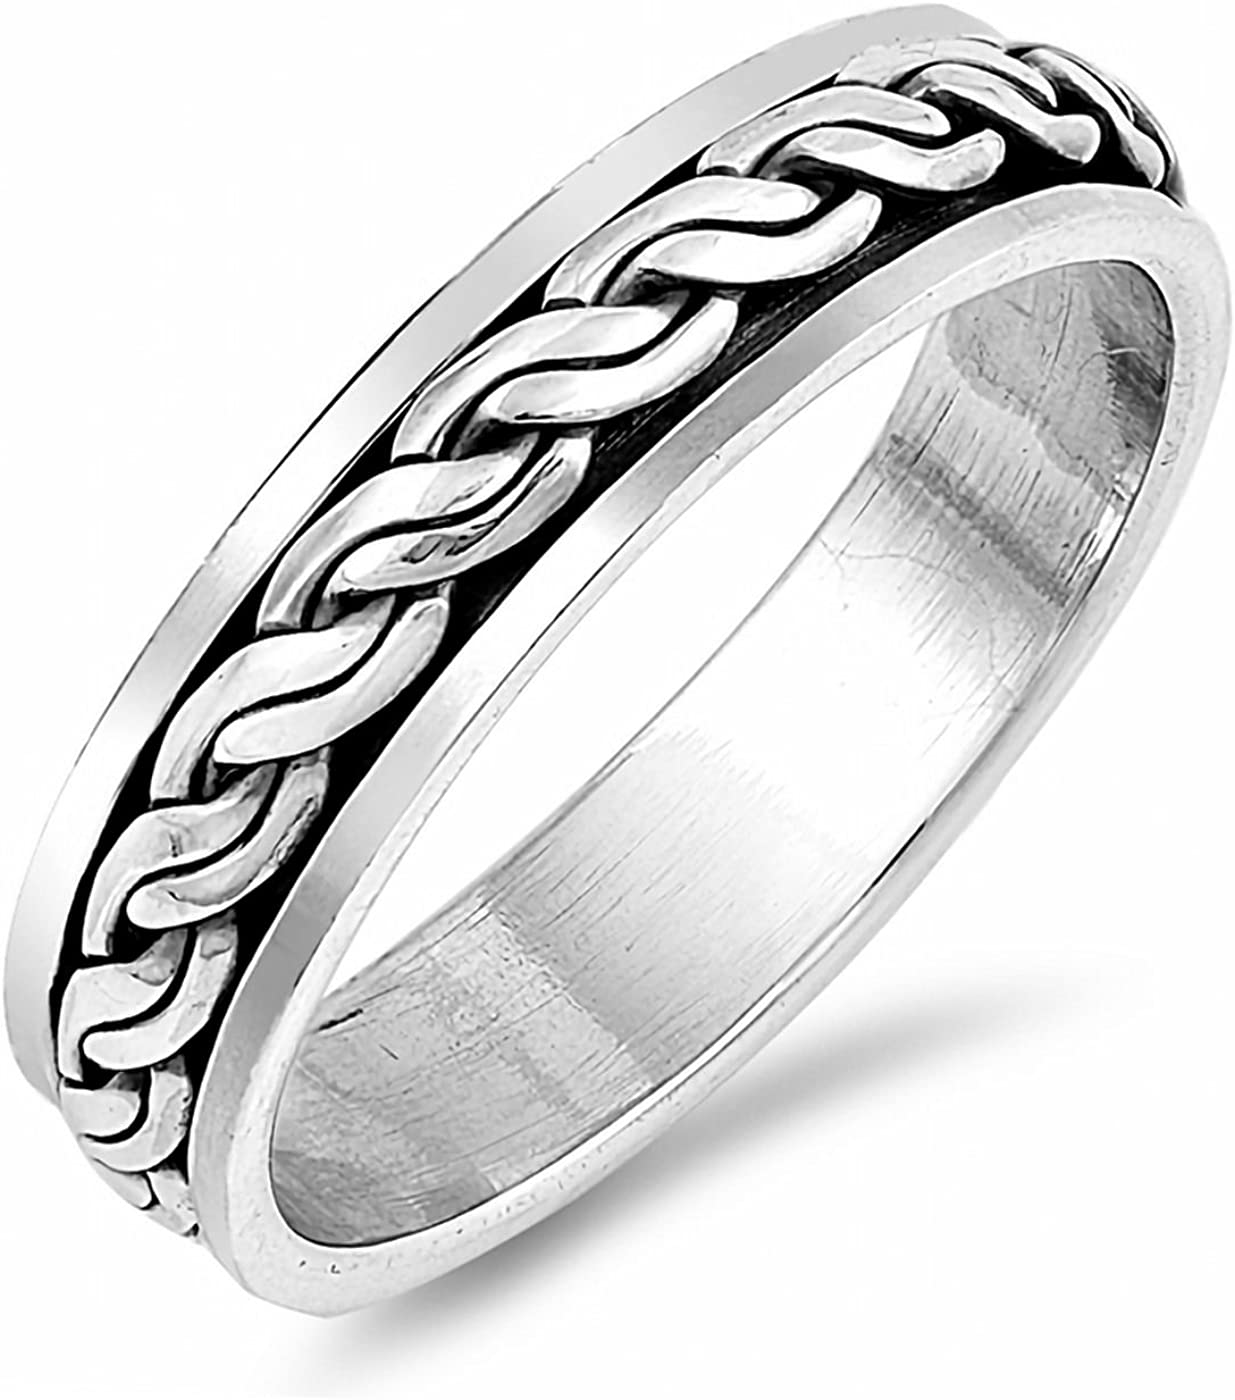 Celtic Weave Braid Spinner 925 Sterling Silver Ring Unisex 8mm Band Sizes 7-13